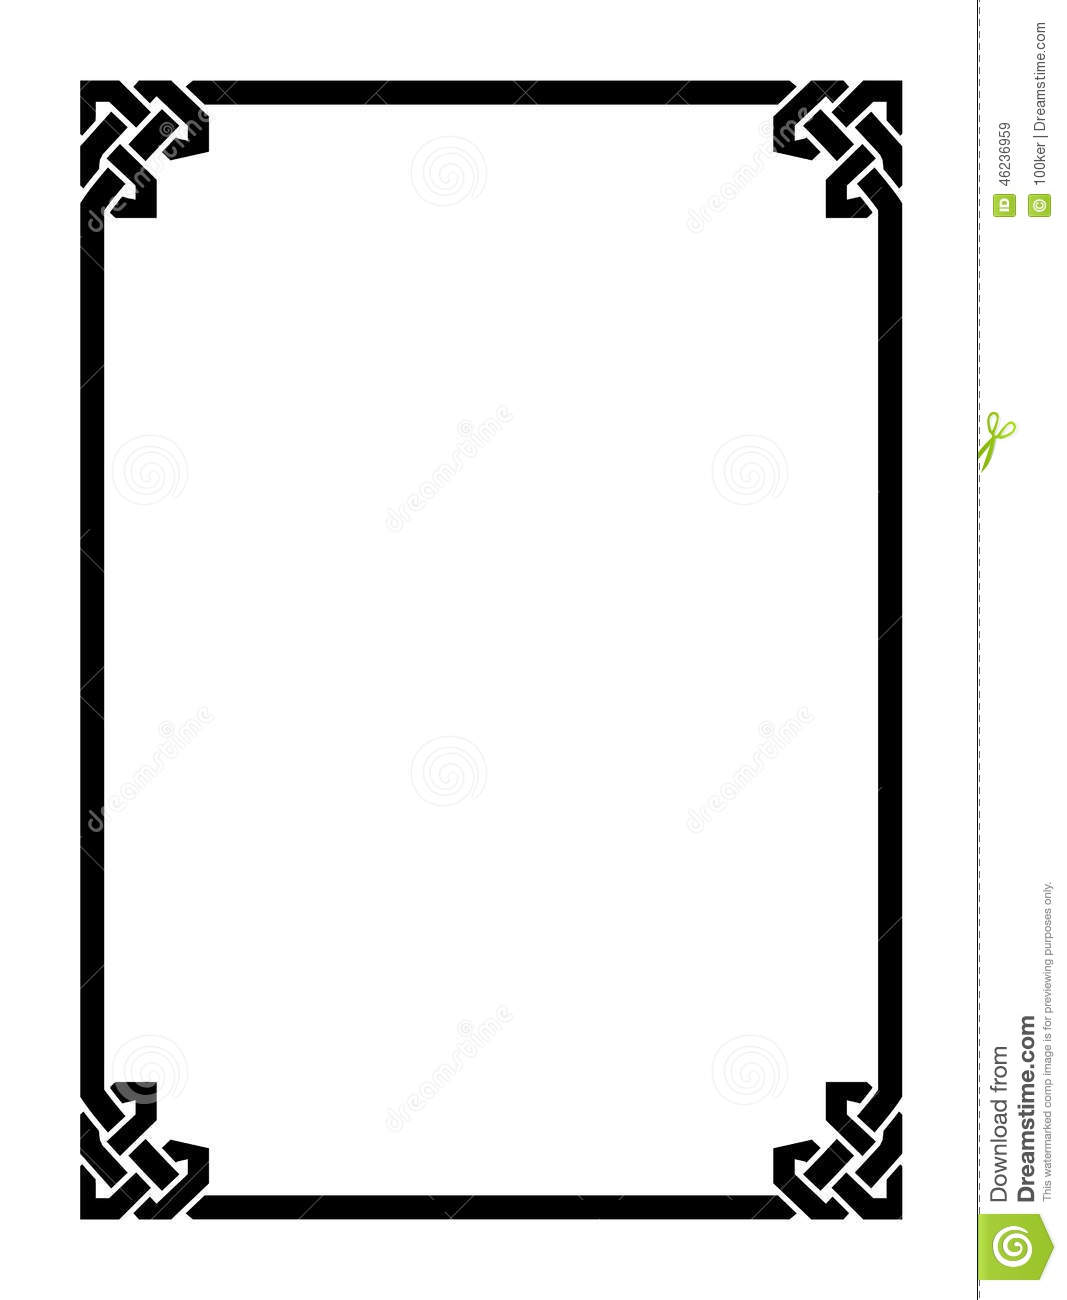 free simple frame clipart awesome graphic library